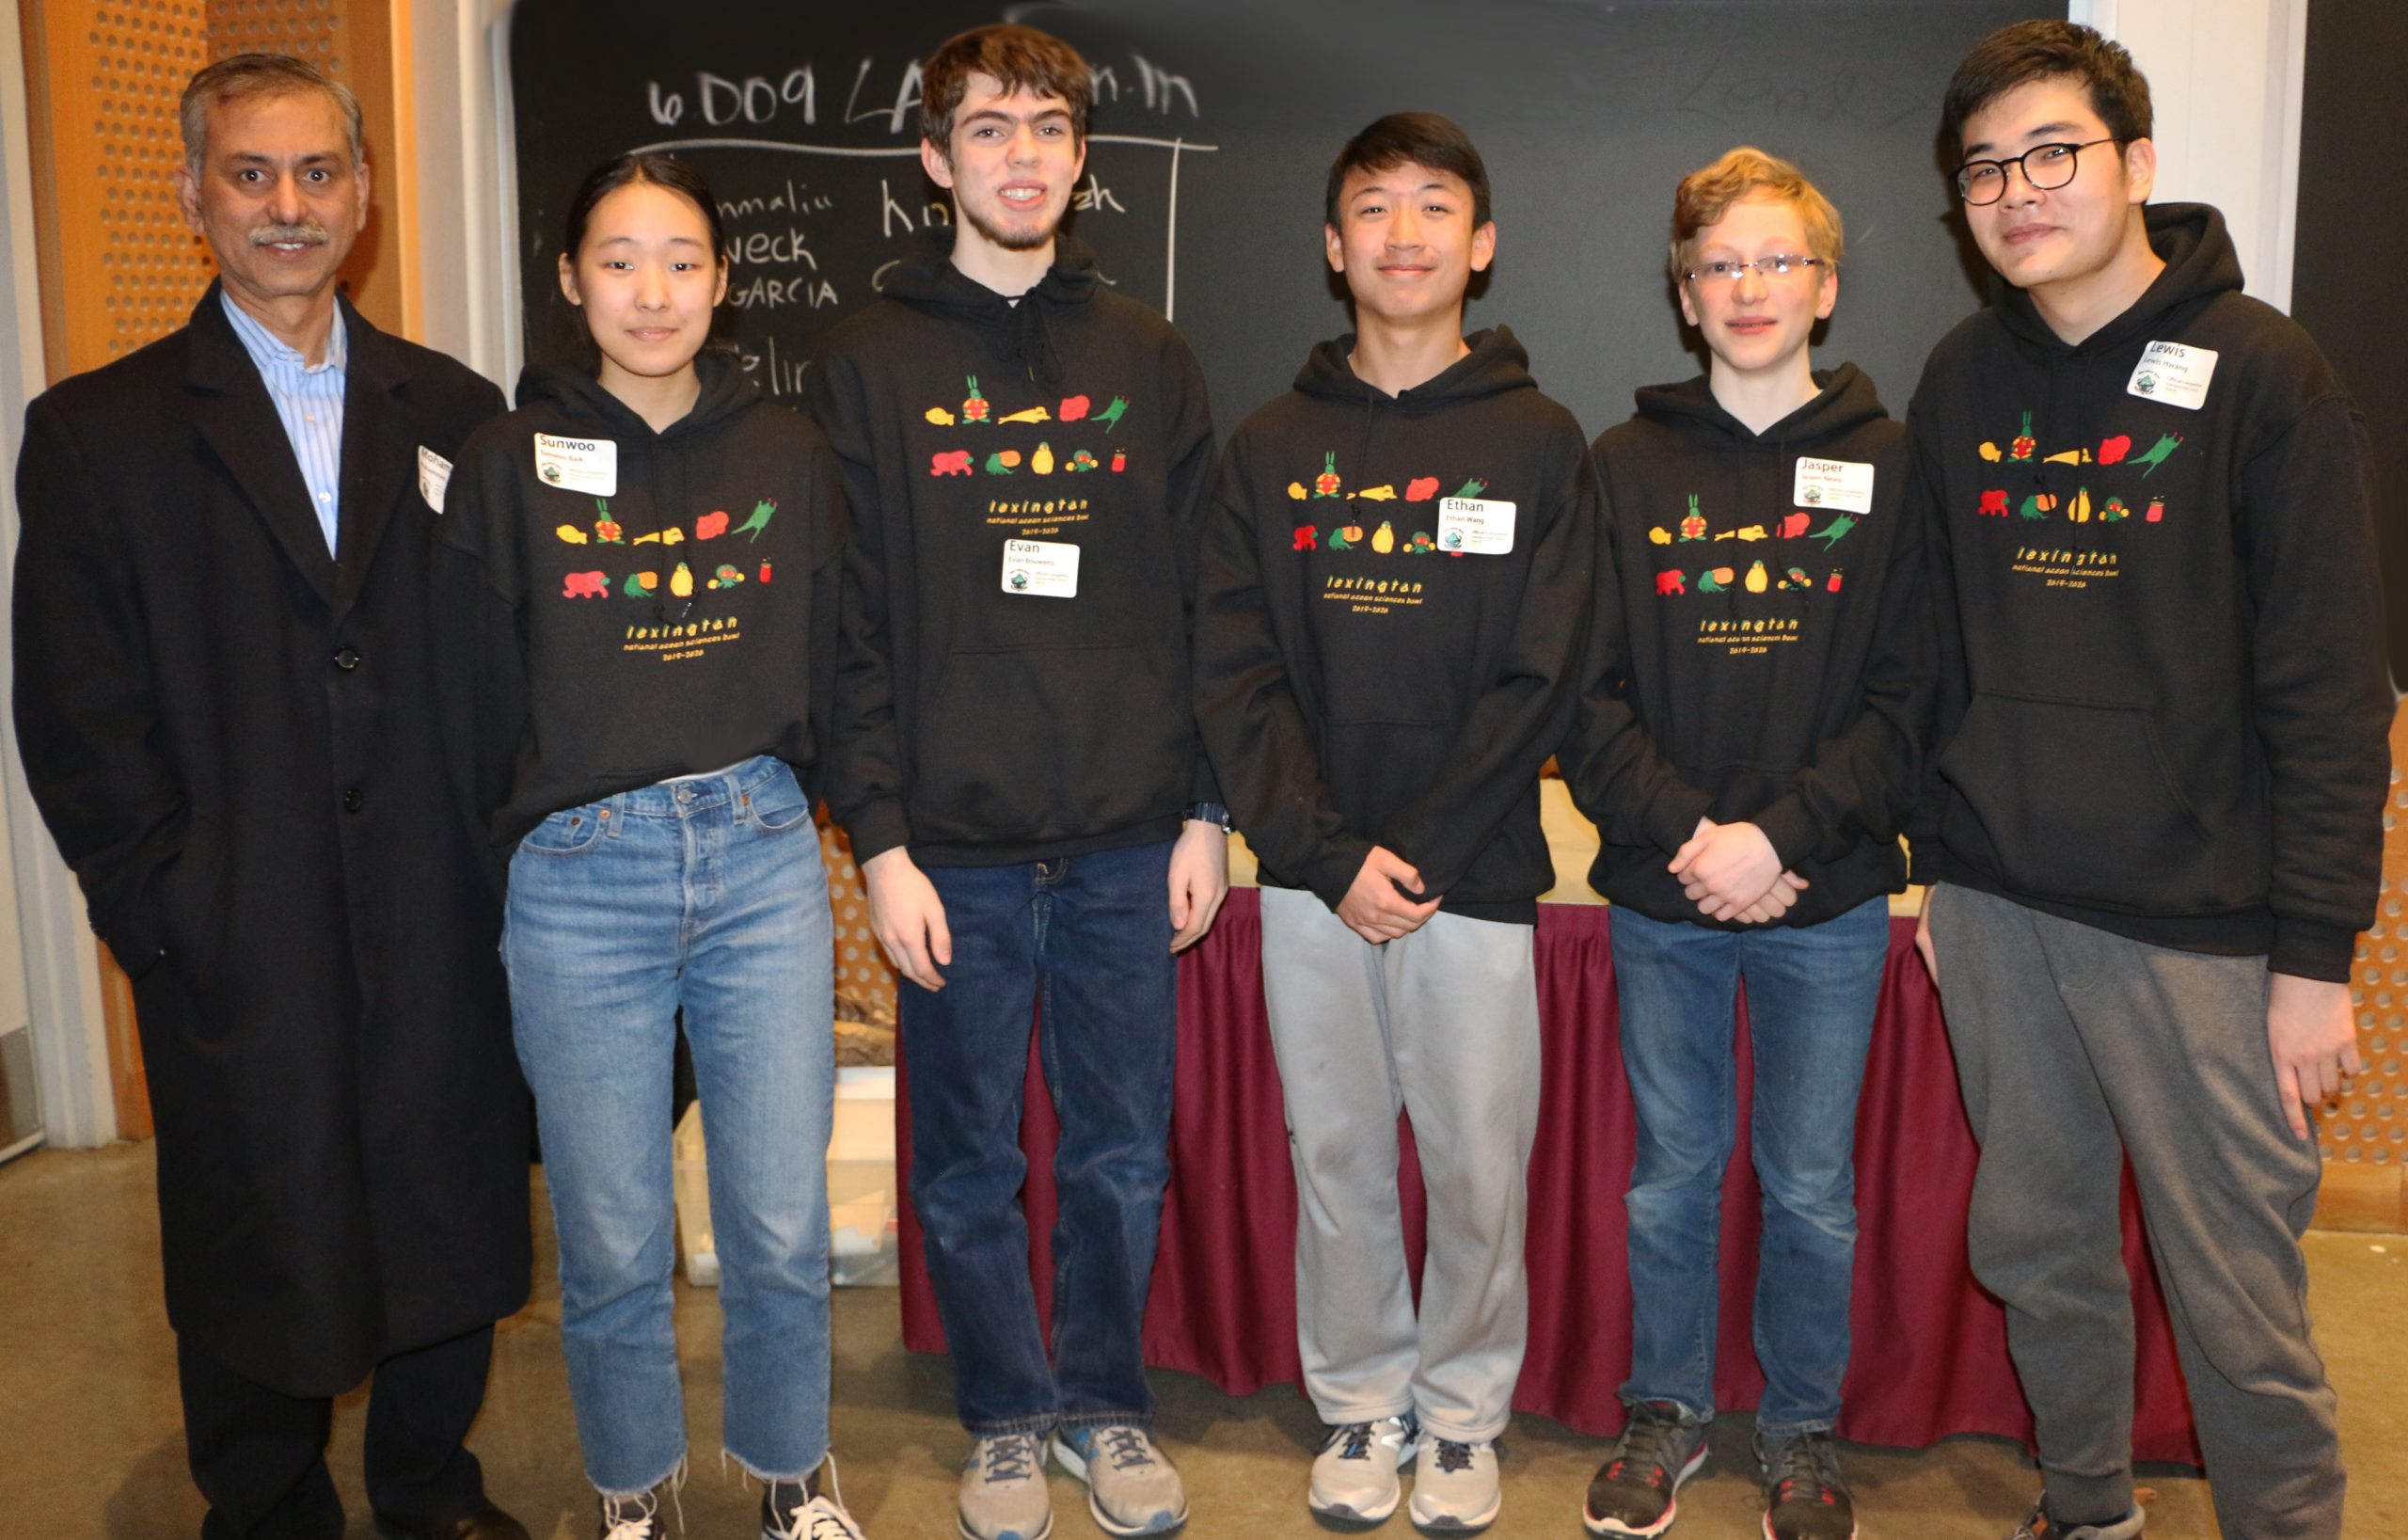 Students from the winning team, Lexington High School B